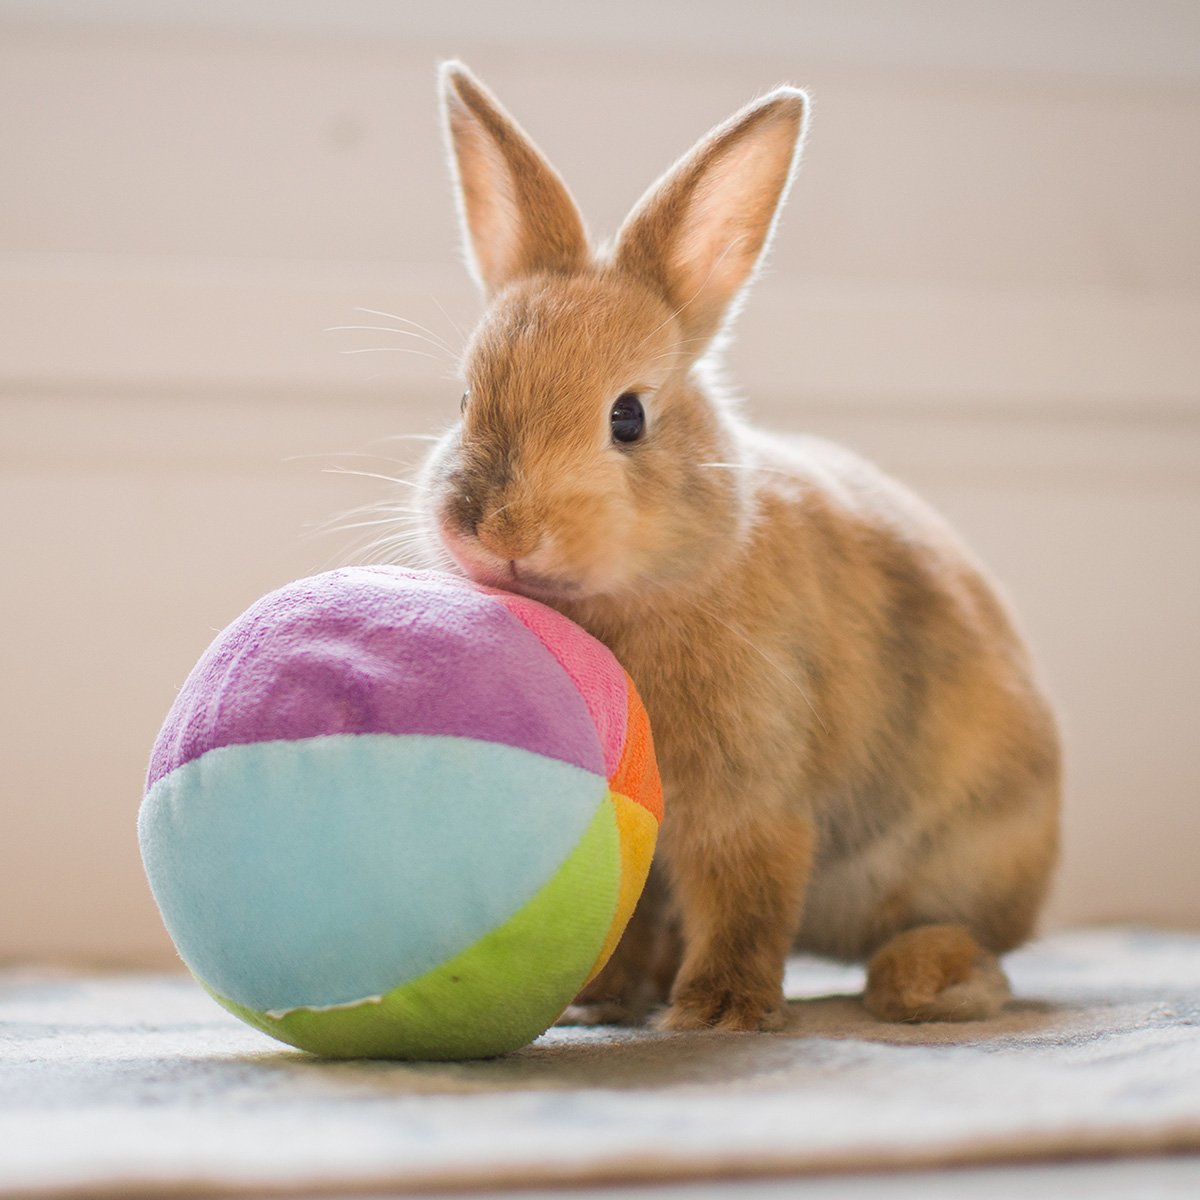 Mr. Hoppy Golightly's Favorite Bunny Subscription Boxes